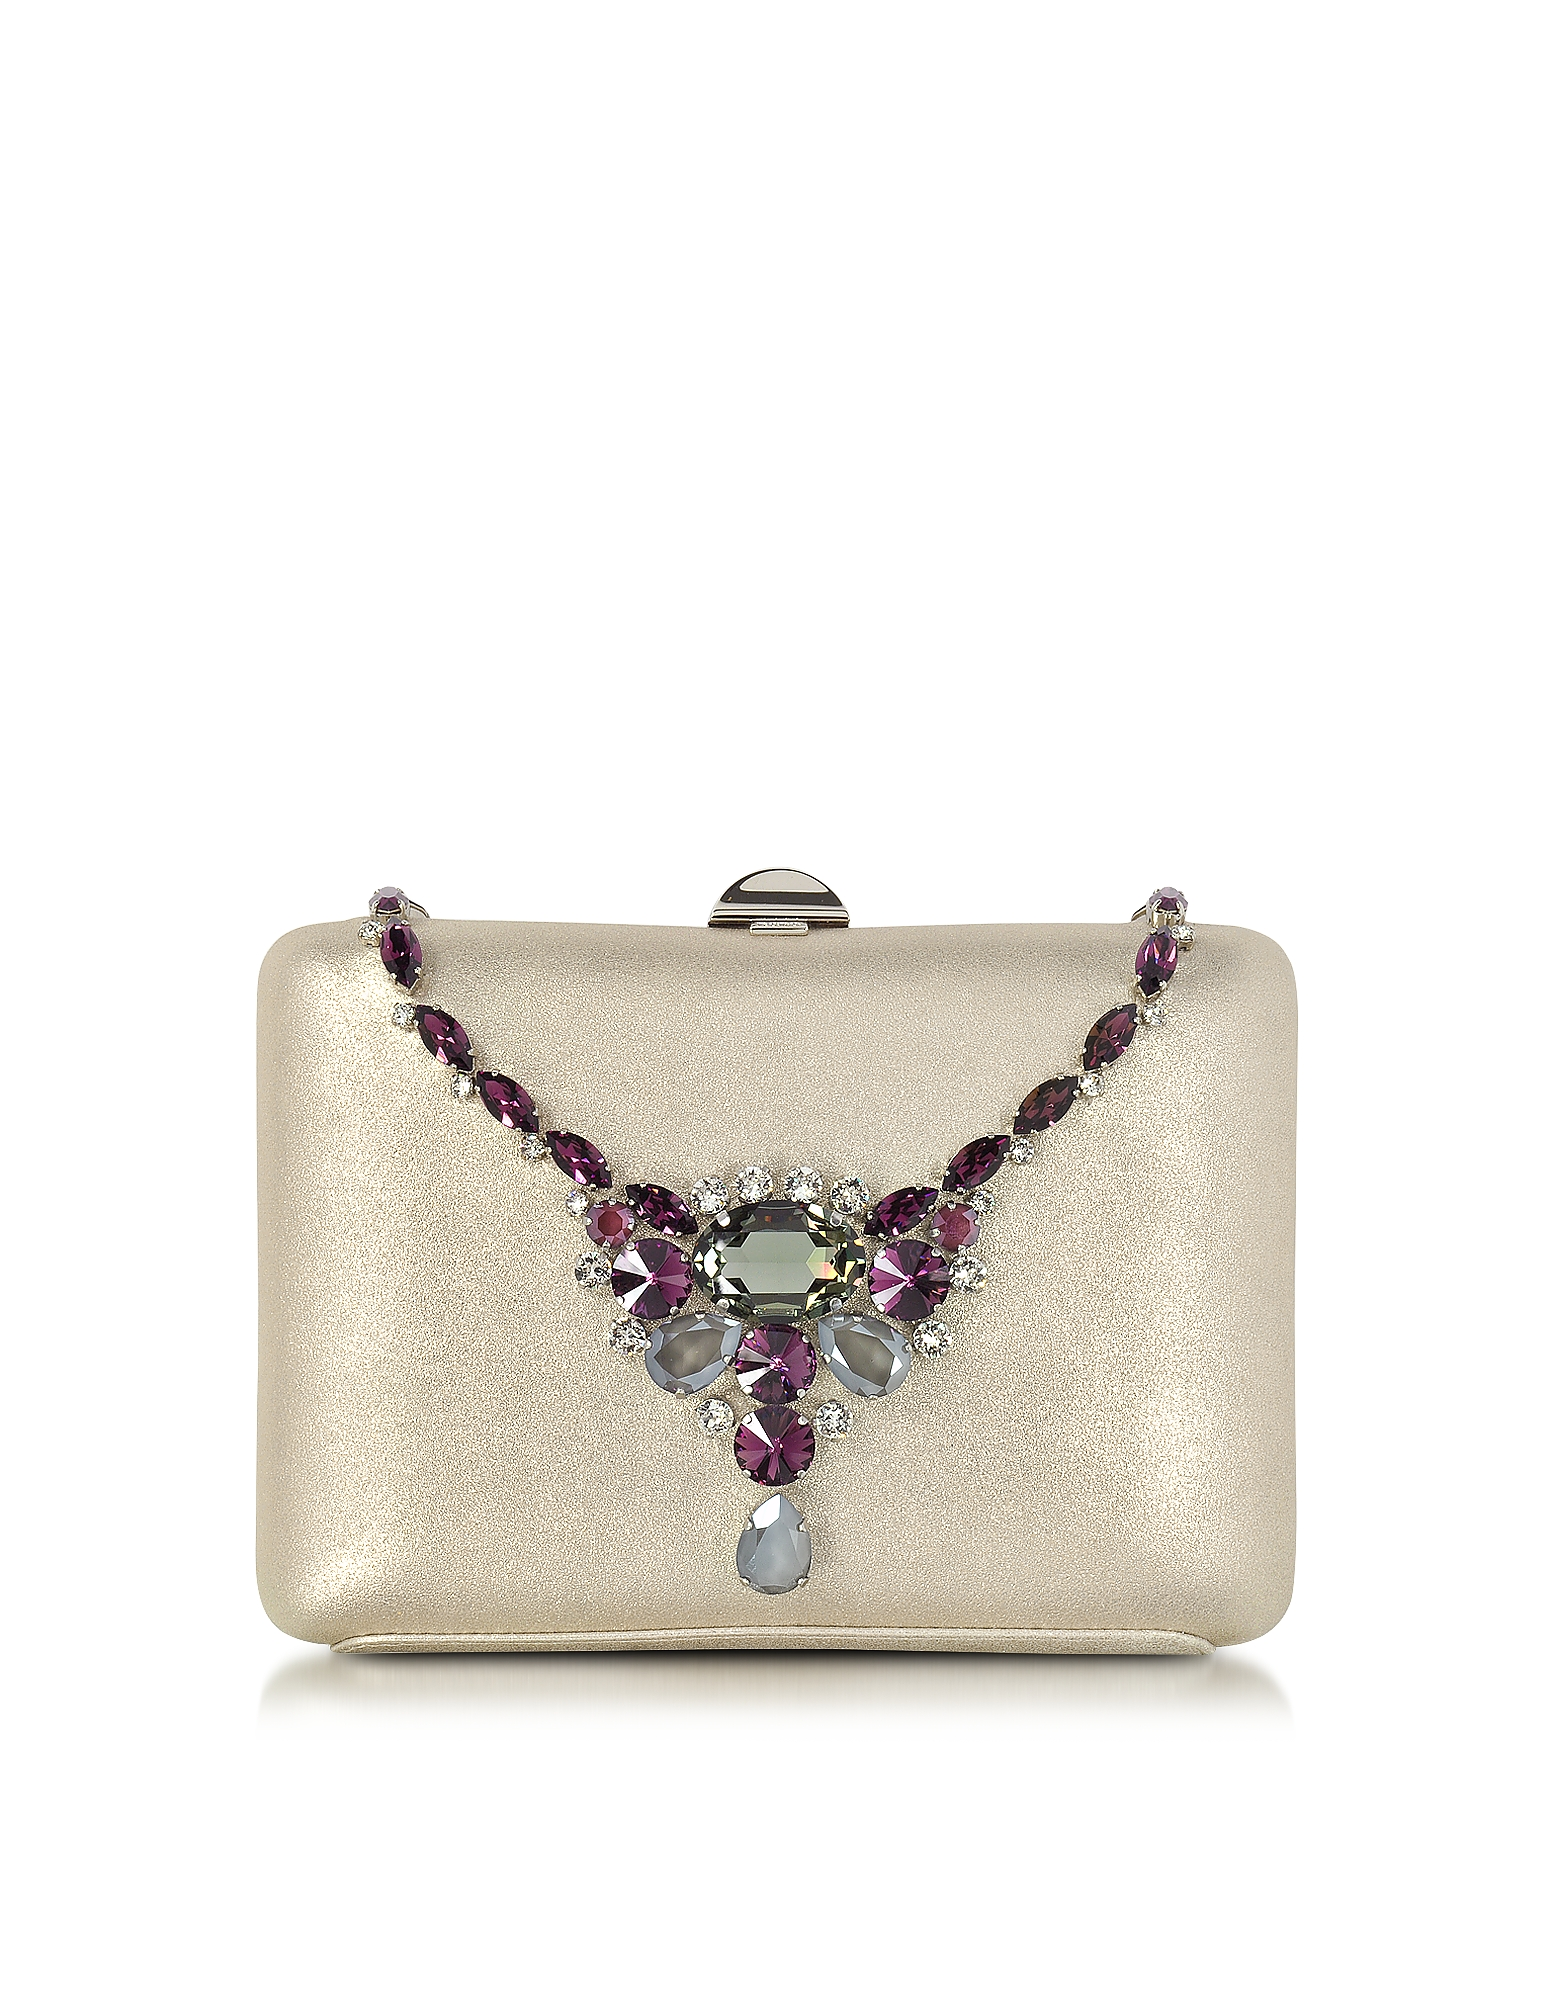 Rodo Handbags, Laminated Suede Collier Clutch w/Crystals